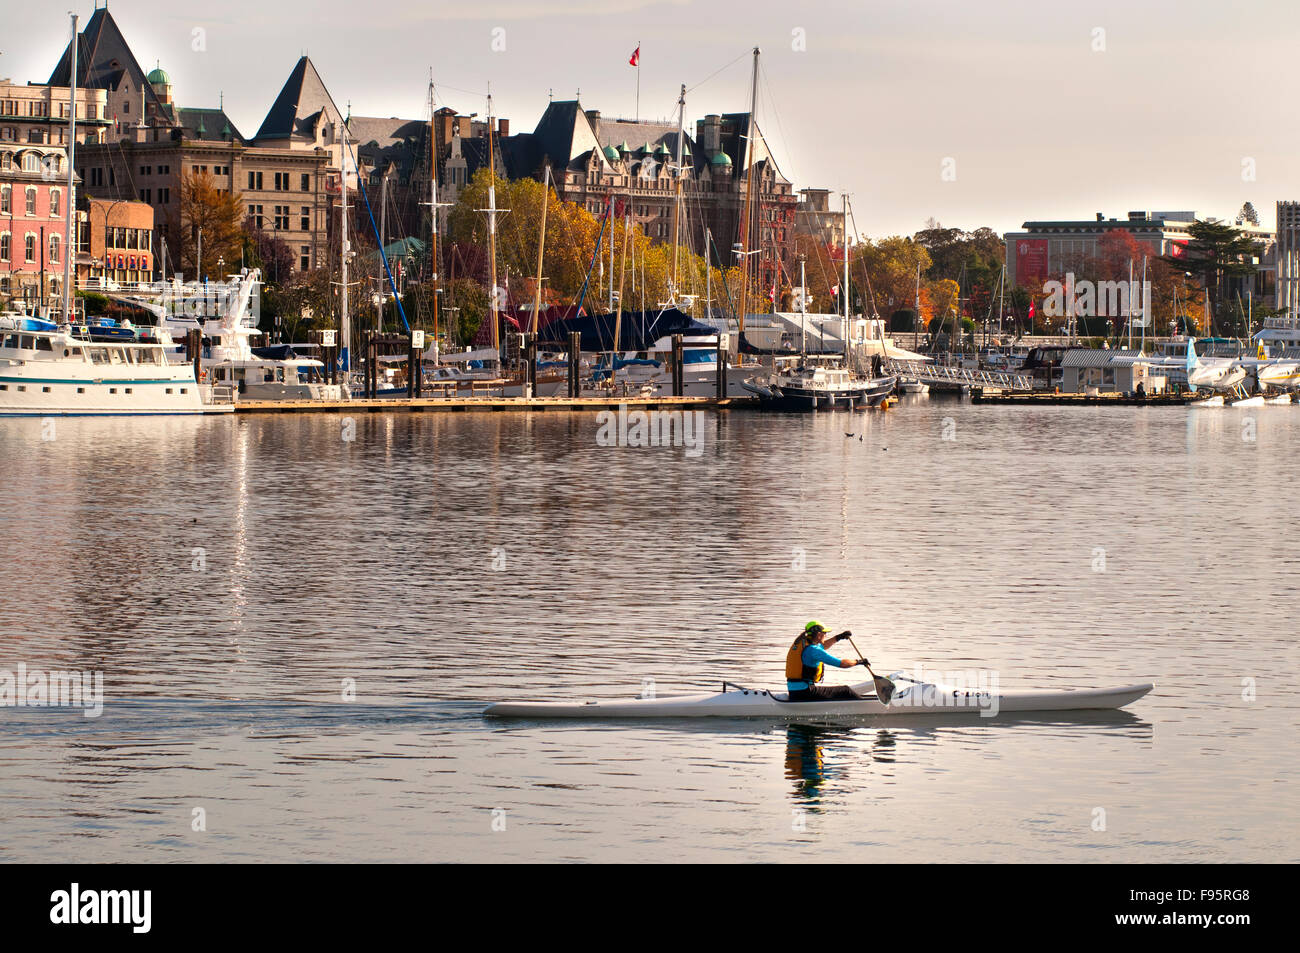 A kayaker paddles the Inner Harbour of Victoria, BC - Stock Image